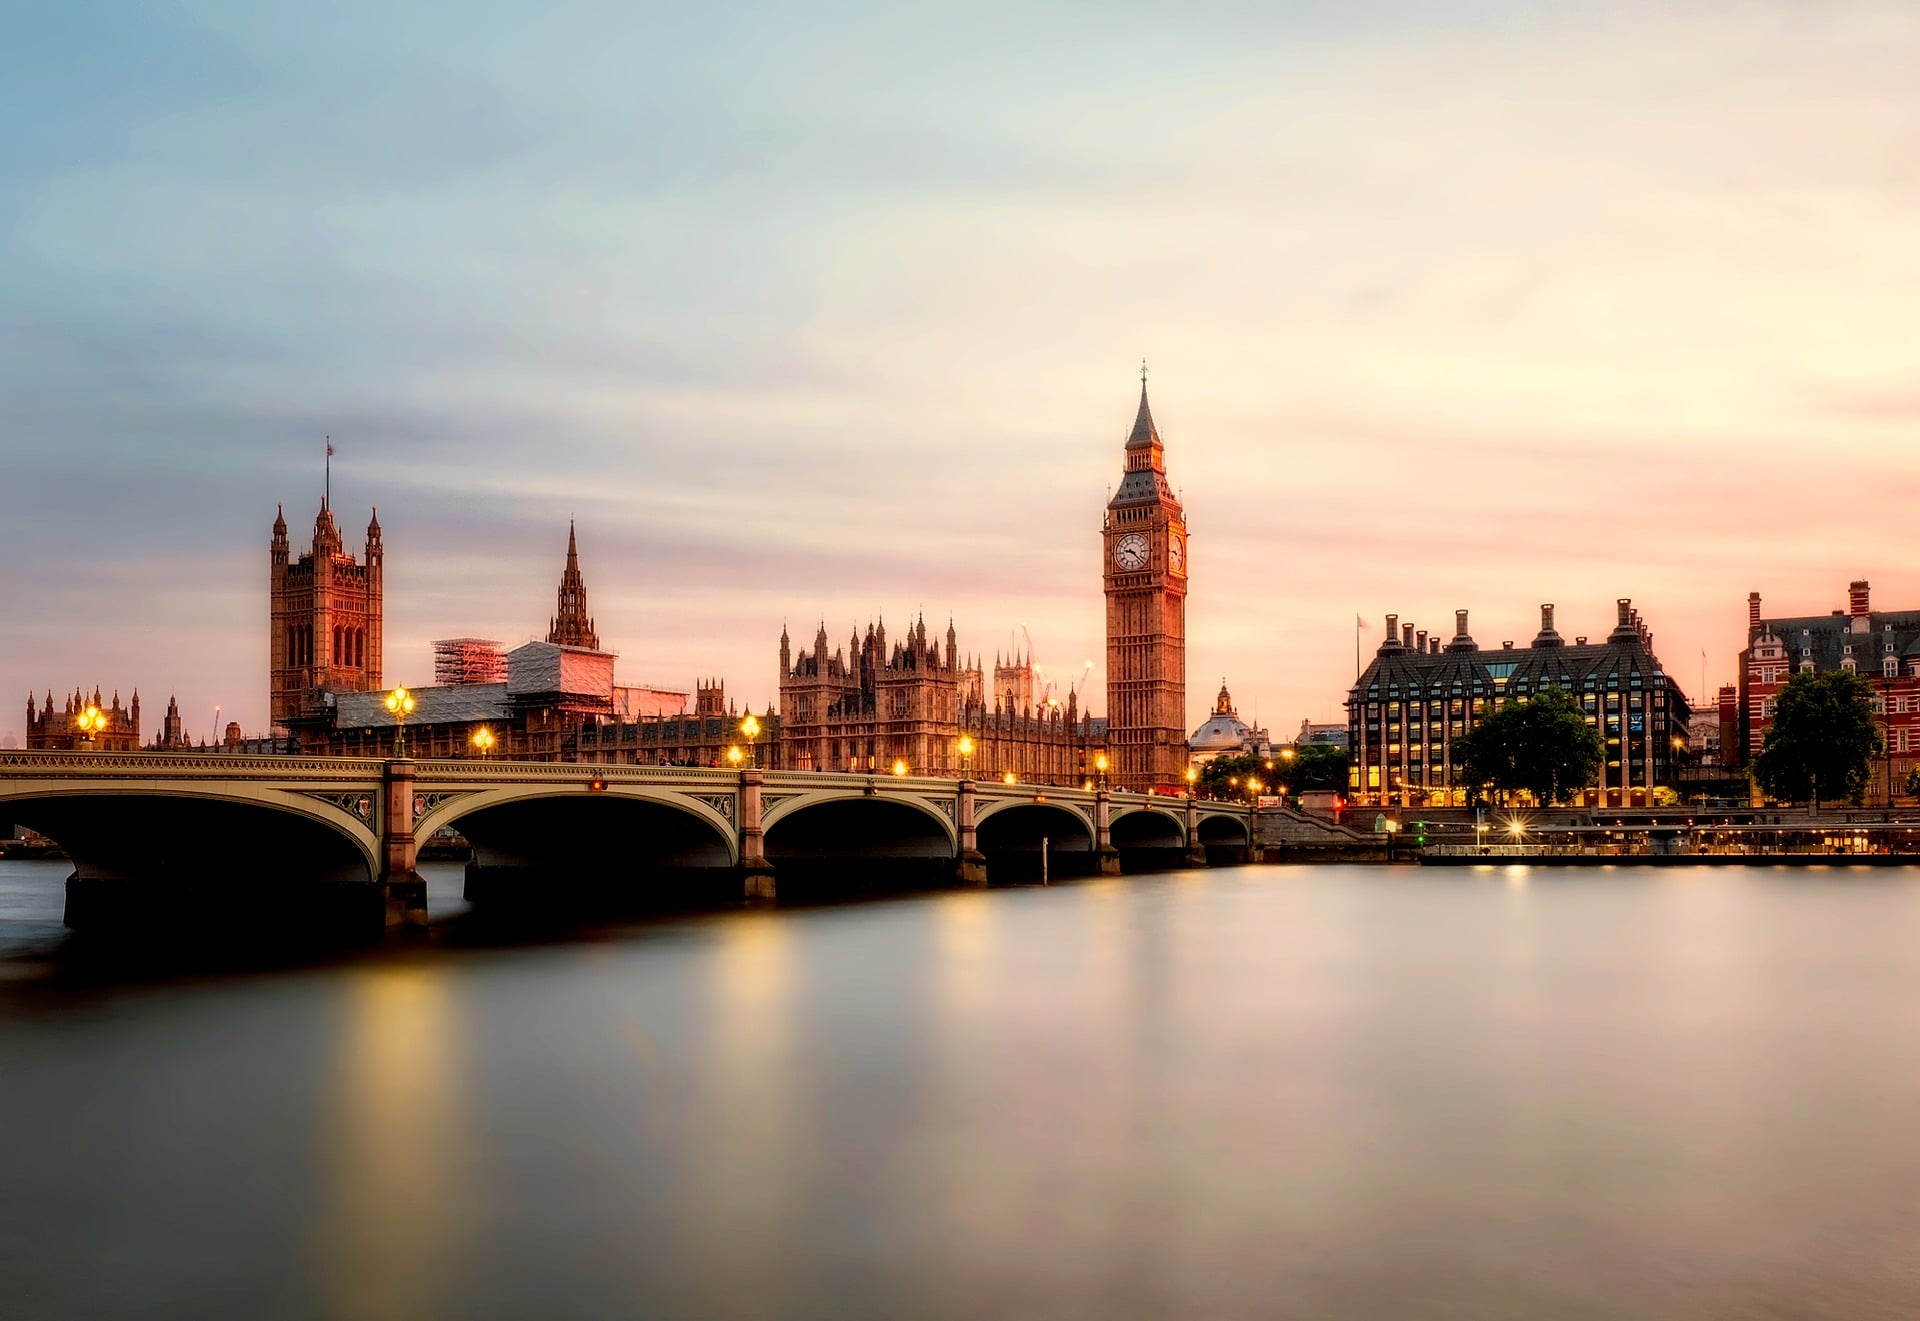 UK Government Industrial Strategy Says It Will Improve Public Procurement